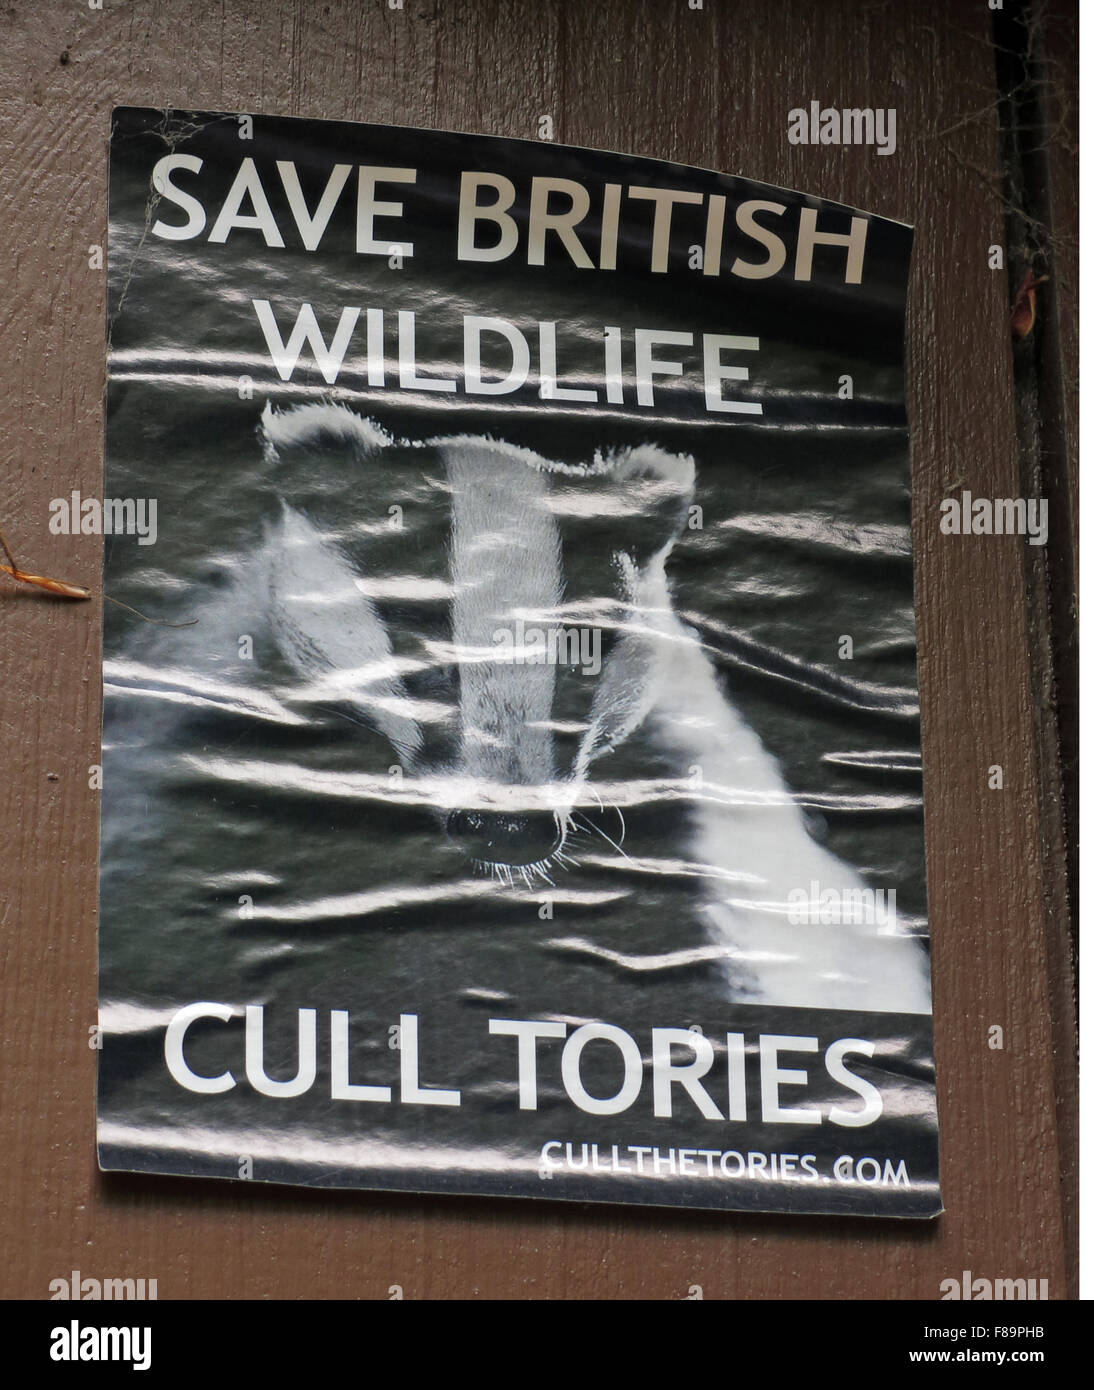 Save British Wildlife Poster,Walsall,West Midlands,Cull Tories, England, UK - Stock Image